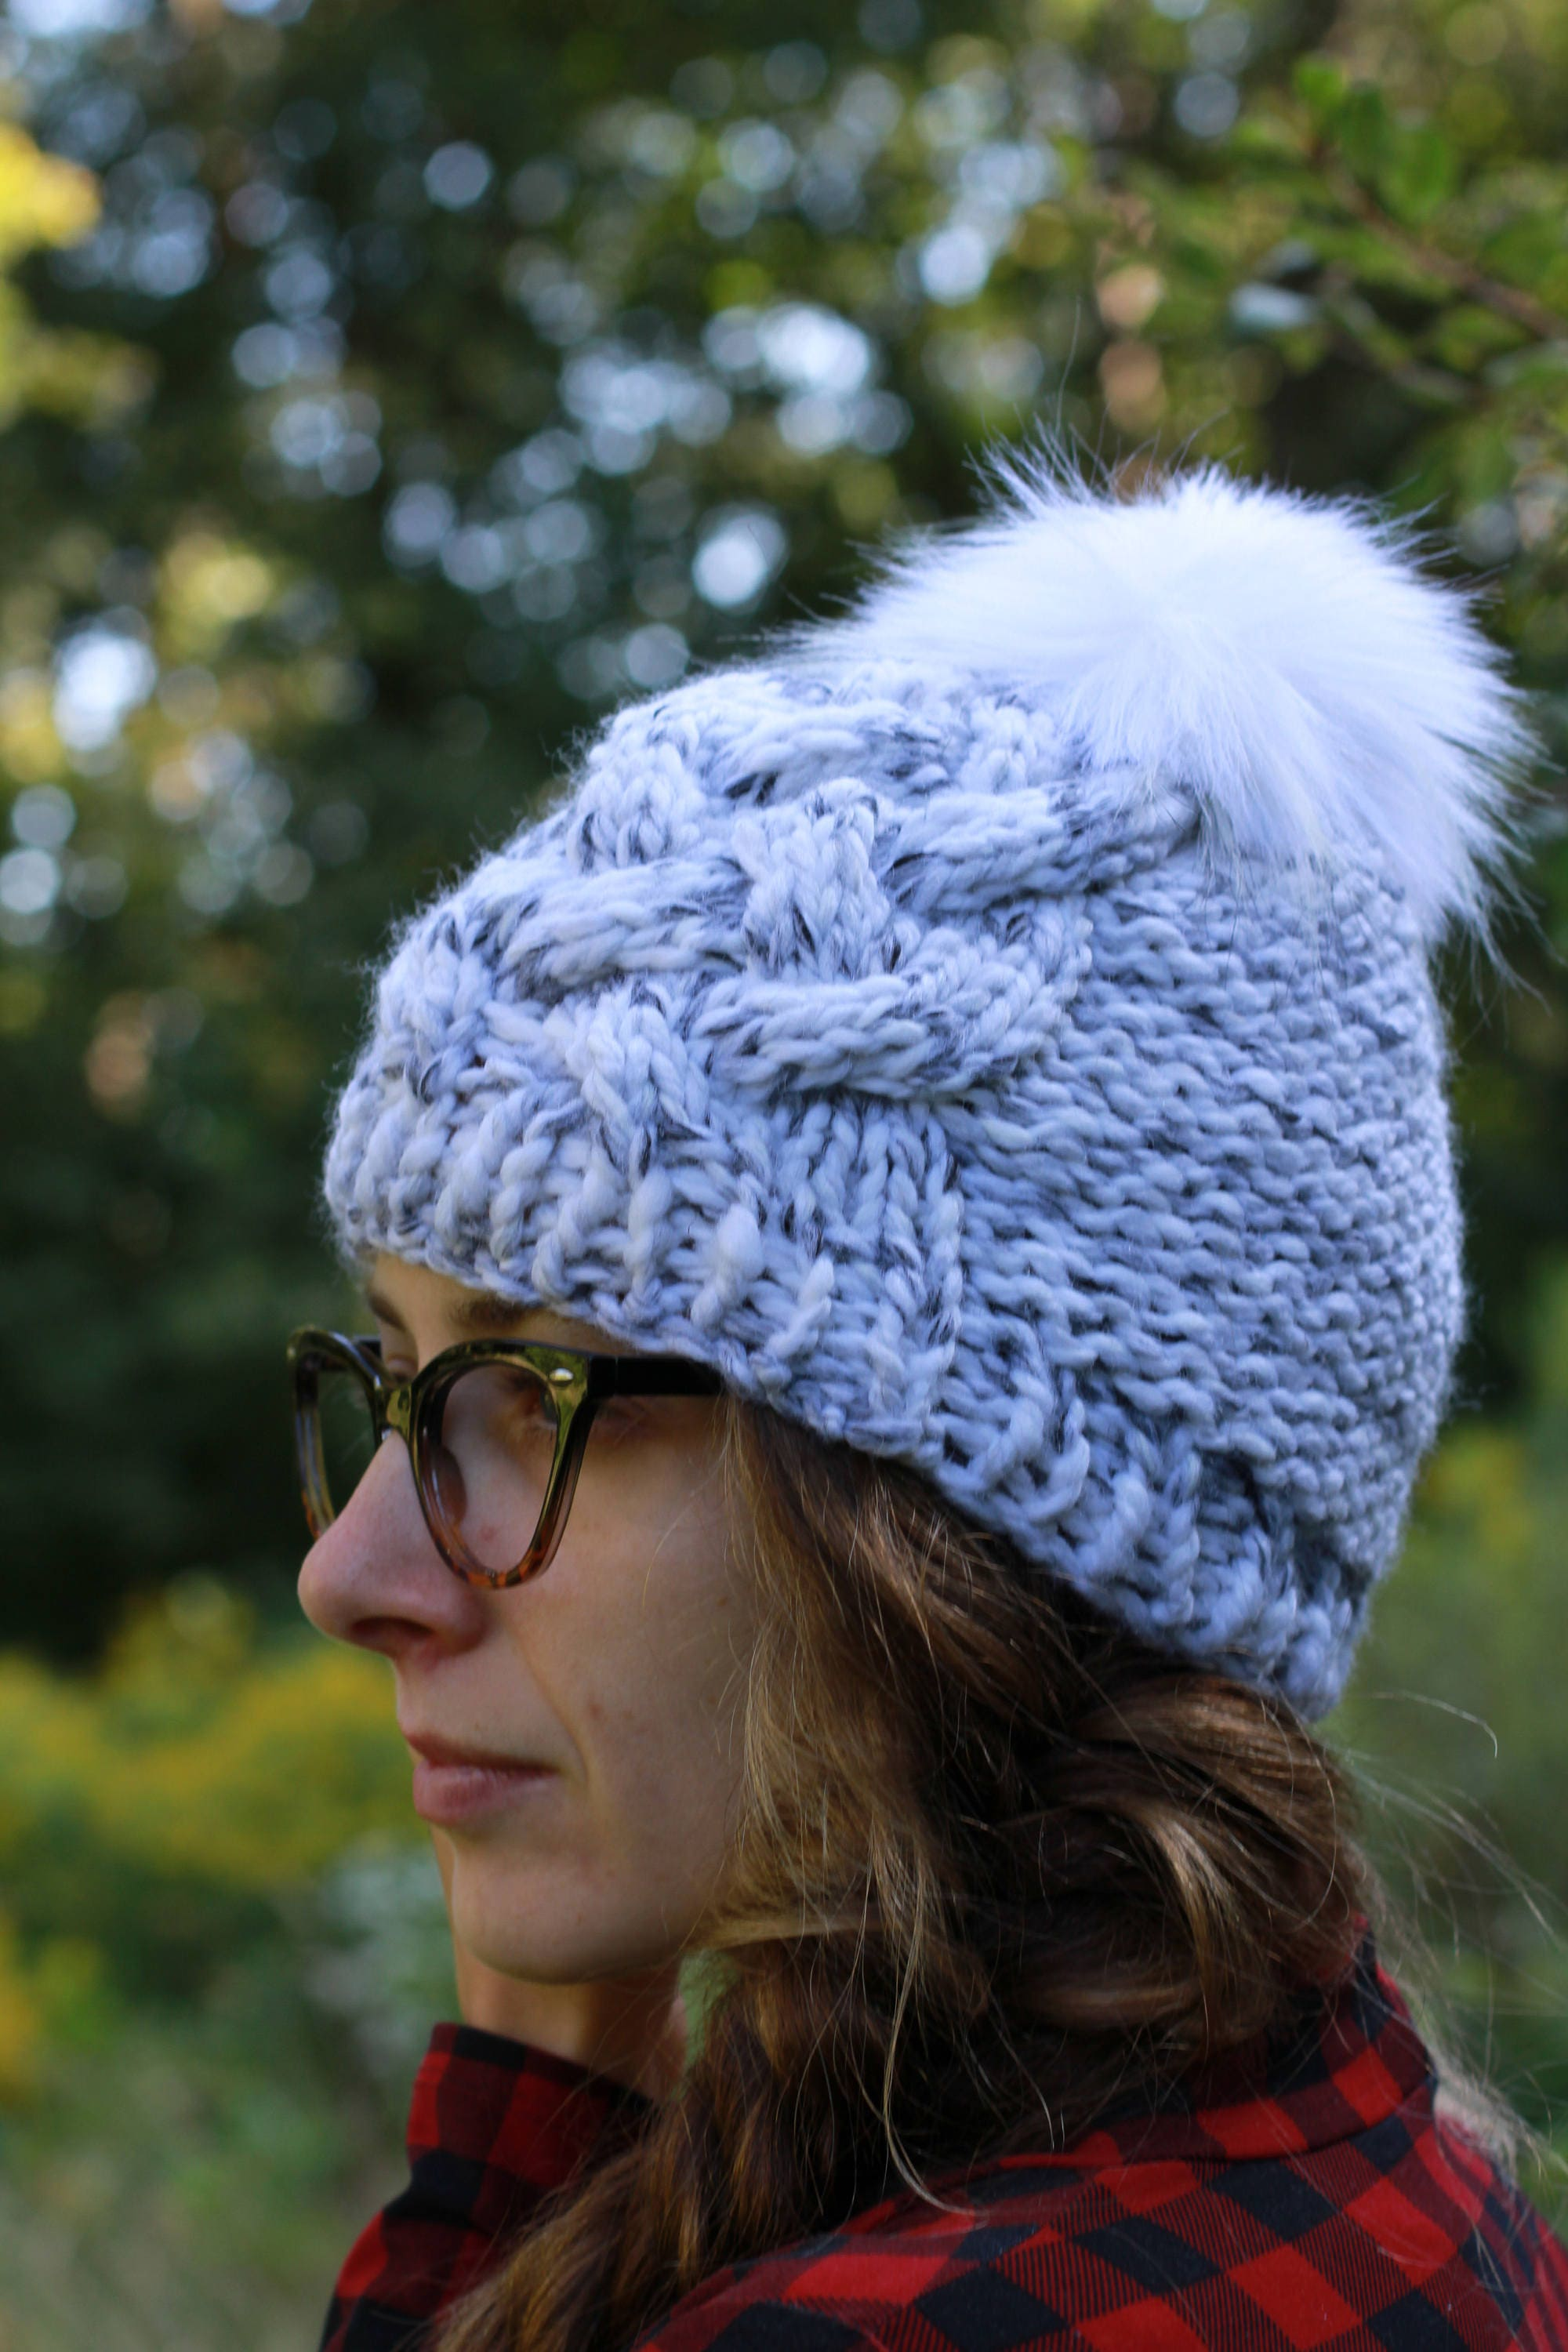 da743dc1b41 Handmade Cabled Knit Textured Winter Hat   THE WHITTNEY Petite